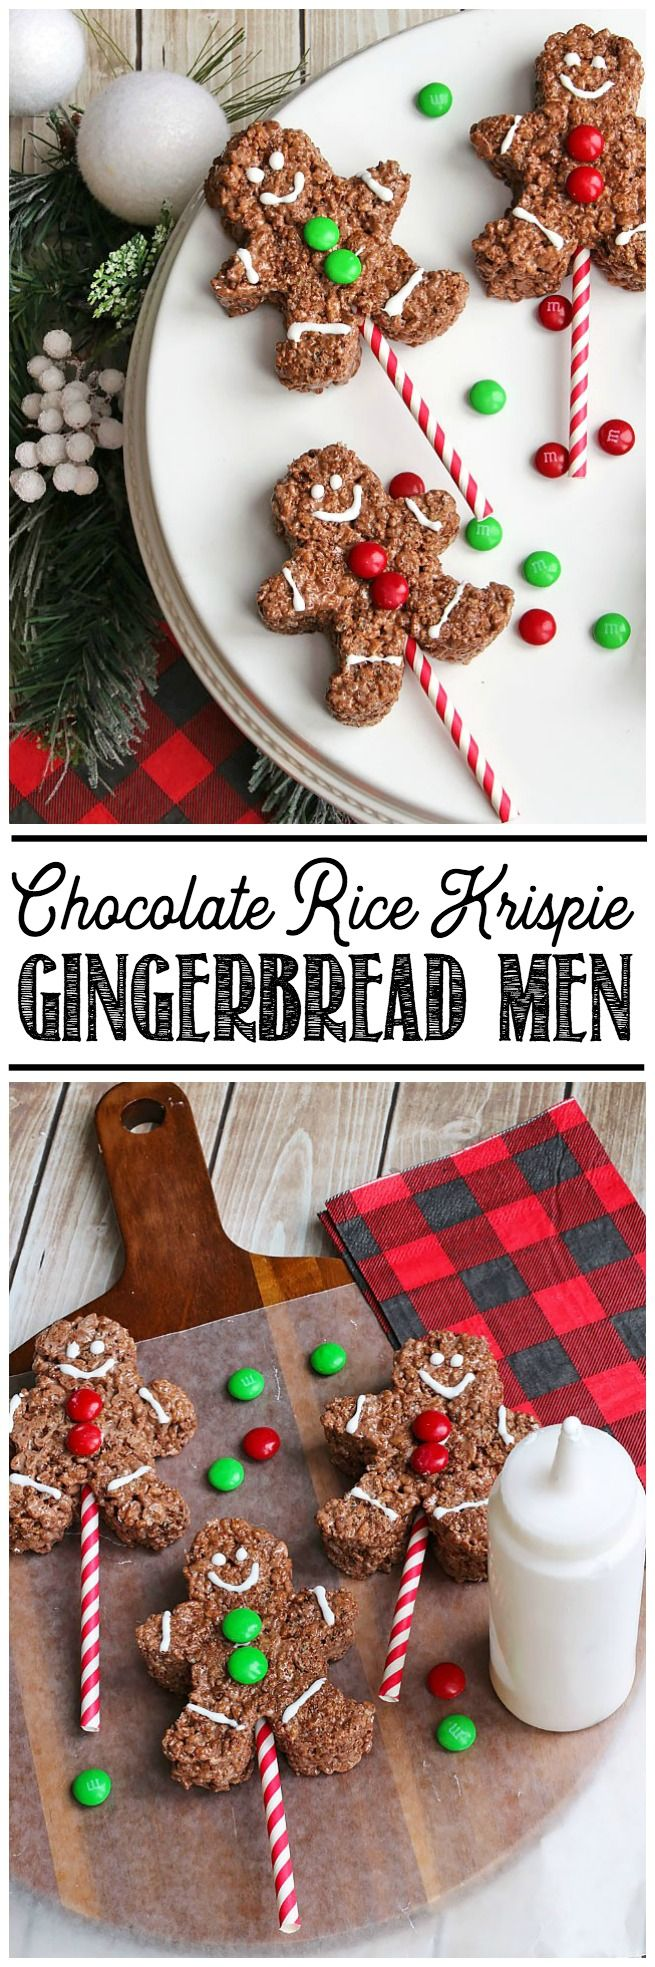 Adorable chocolate Rice Krispie gingerbread men. These would be the hit of any Christmas party!